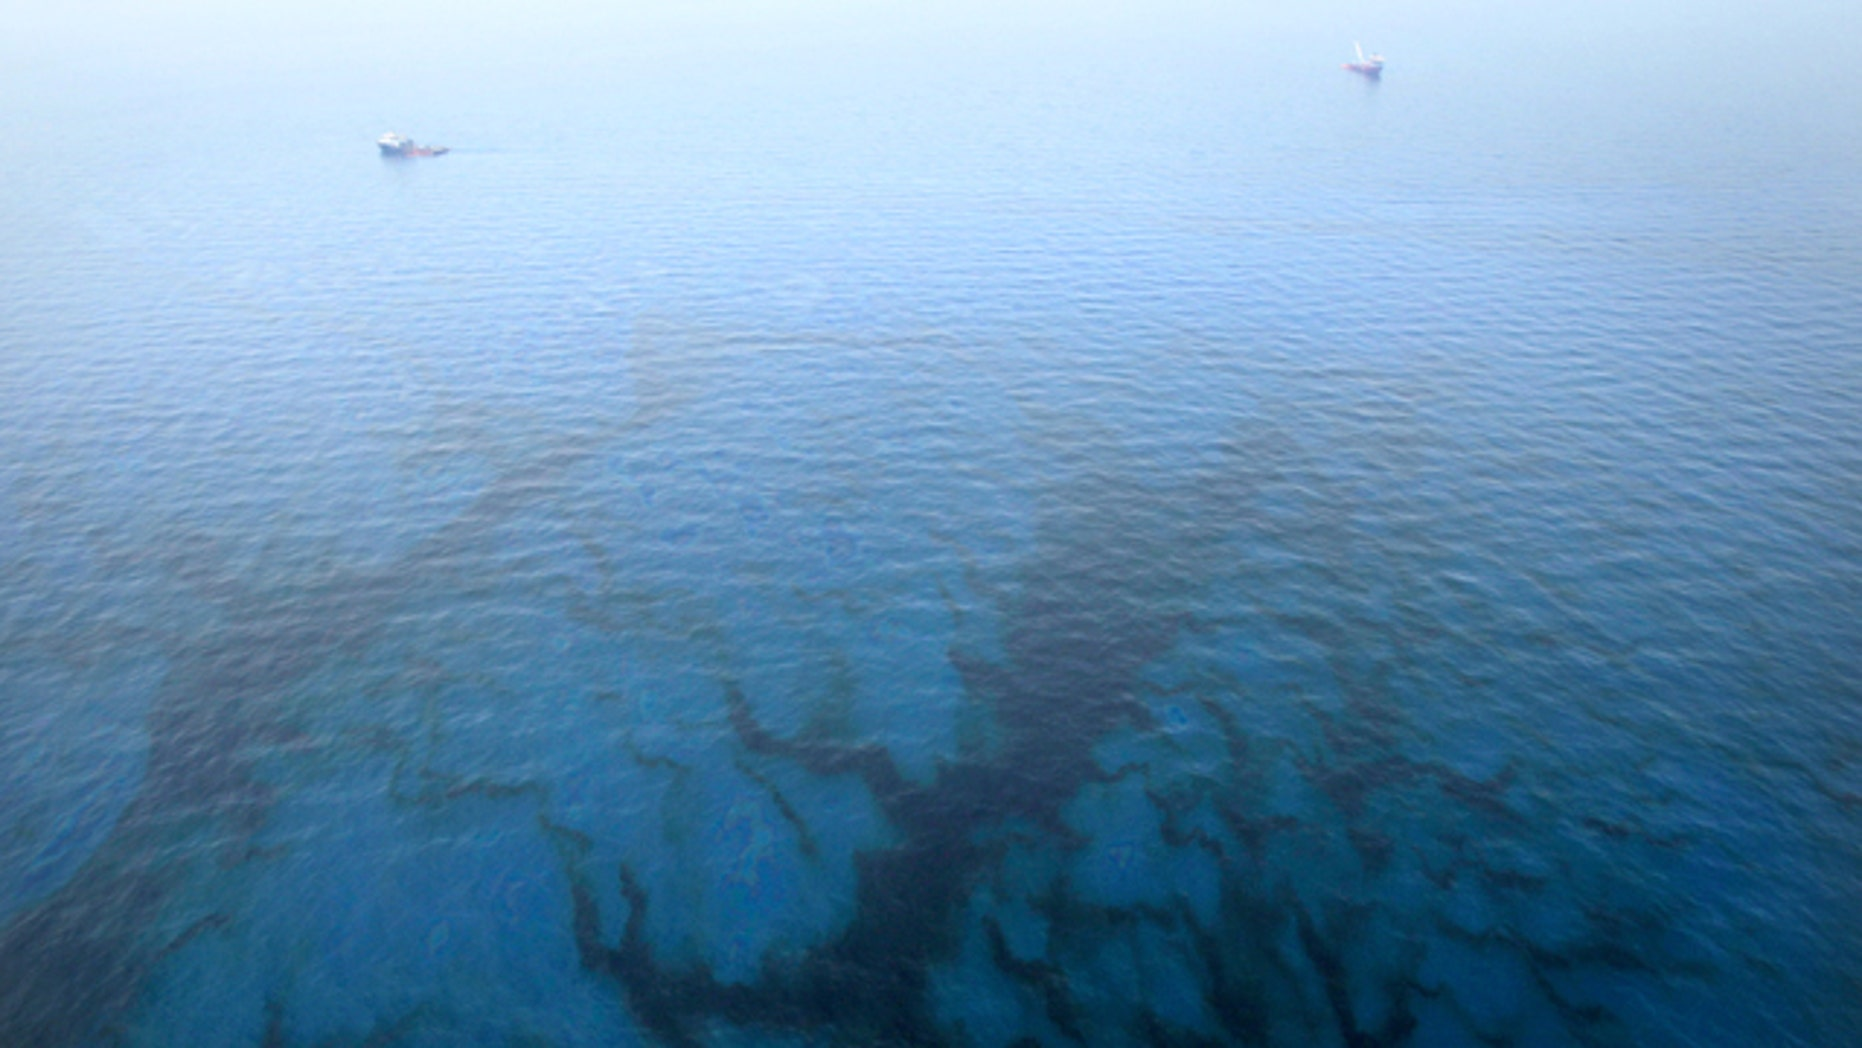 Oil floats in the water near the source of the Deepwater Horizon oil spill in the Gulf of Mexico.